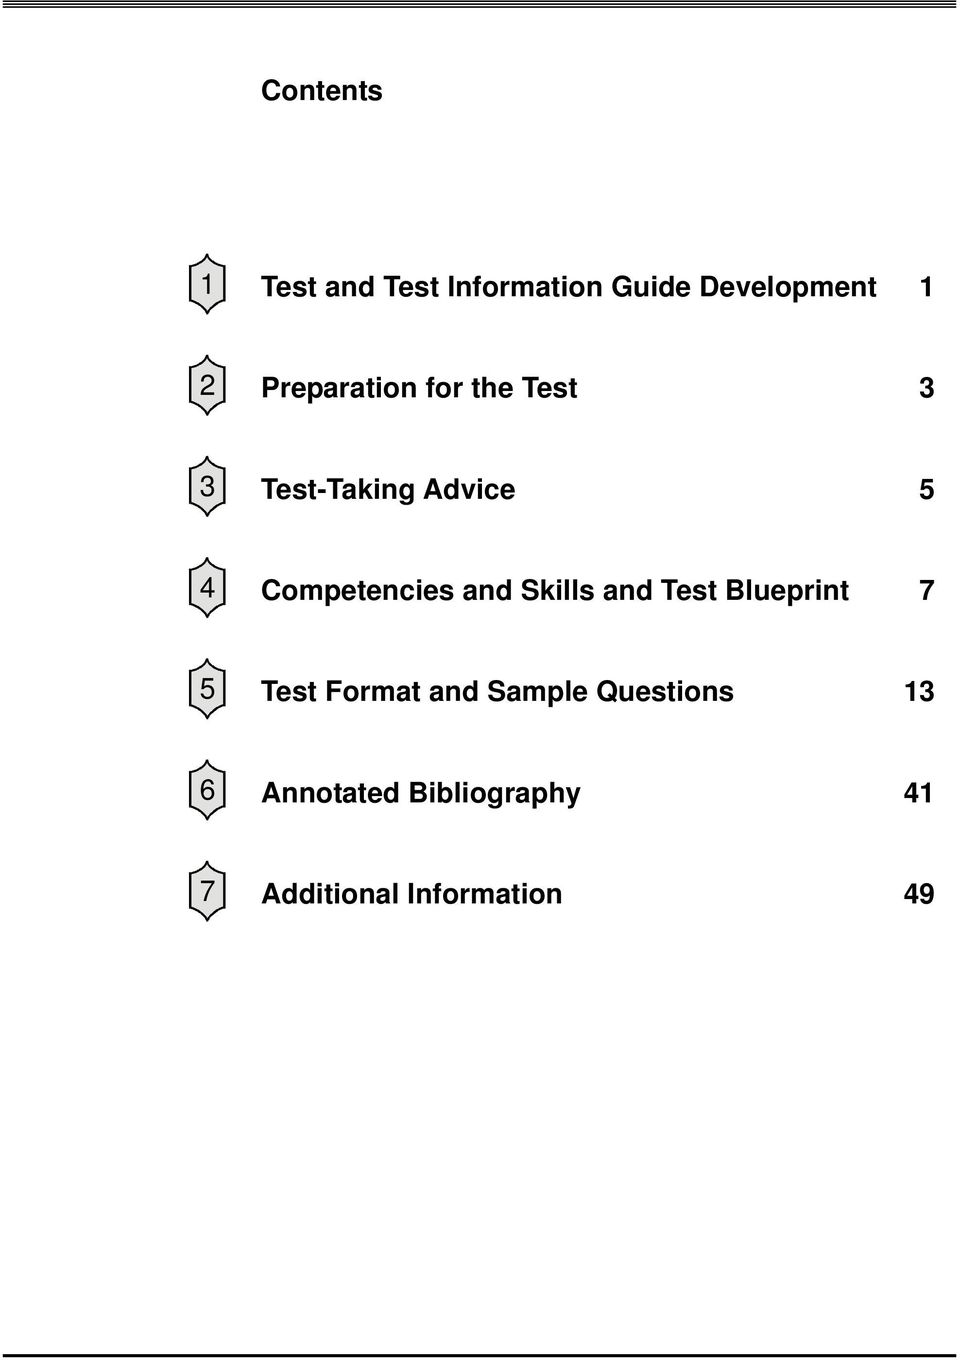 General knowledge test pdf competencies and skills and test blueprint 7 5 test format and fandeluxe Gallery